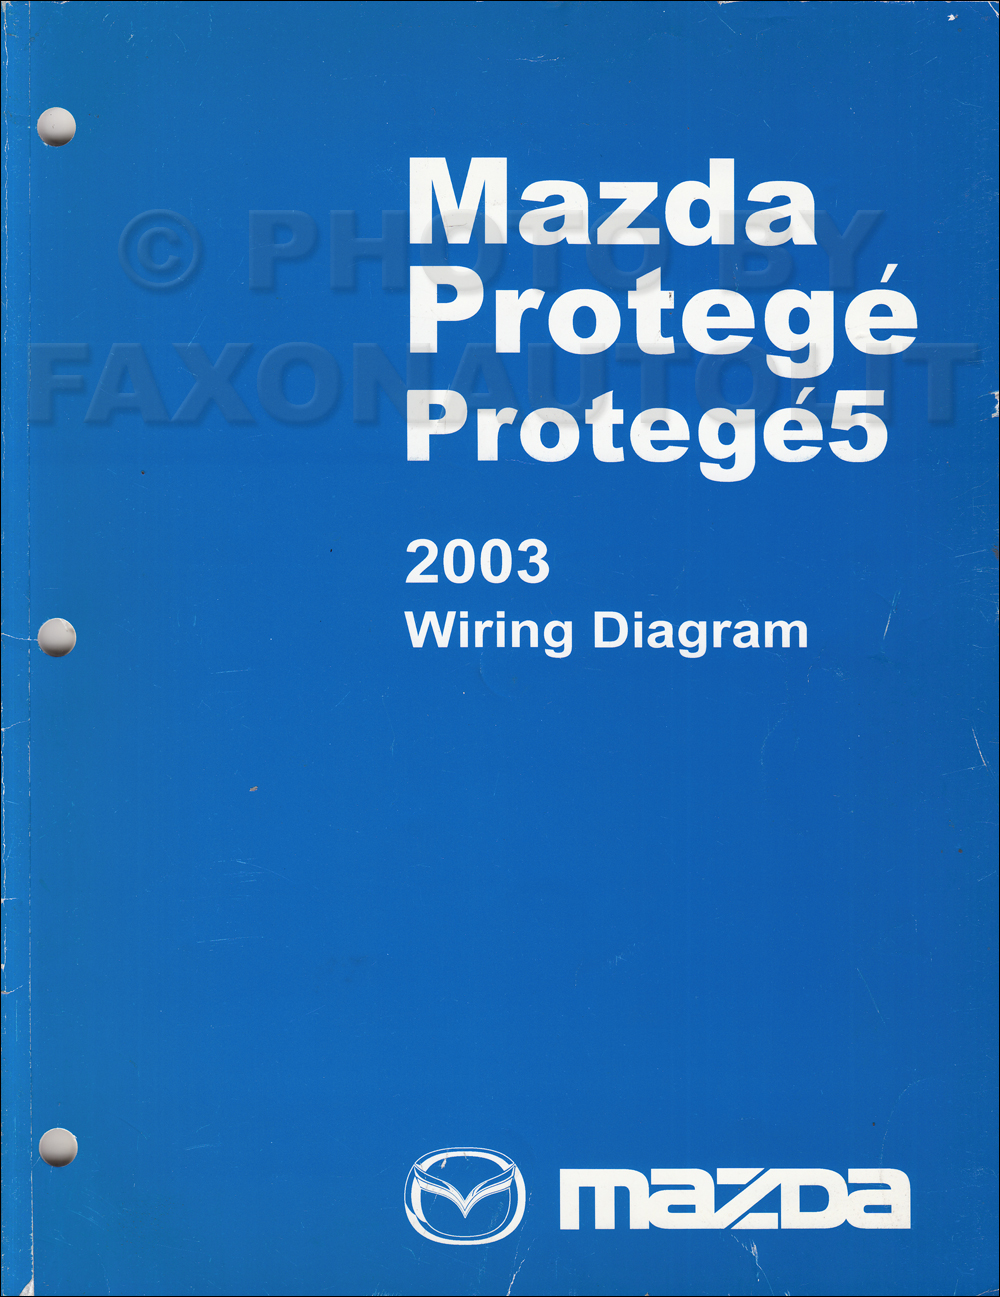 2003 Mazda Stereo Wiring Diagram Schemes Radio For Protege List Of Schematic Circuit Car Color Codes